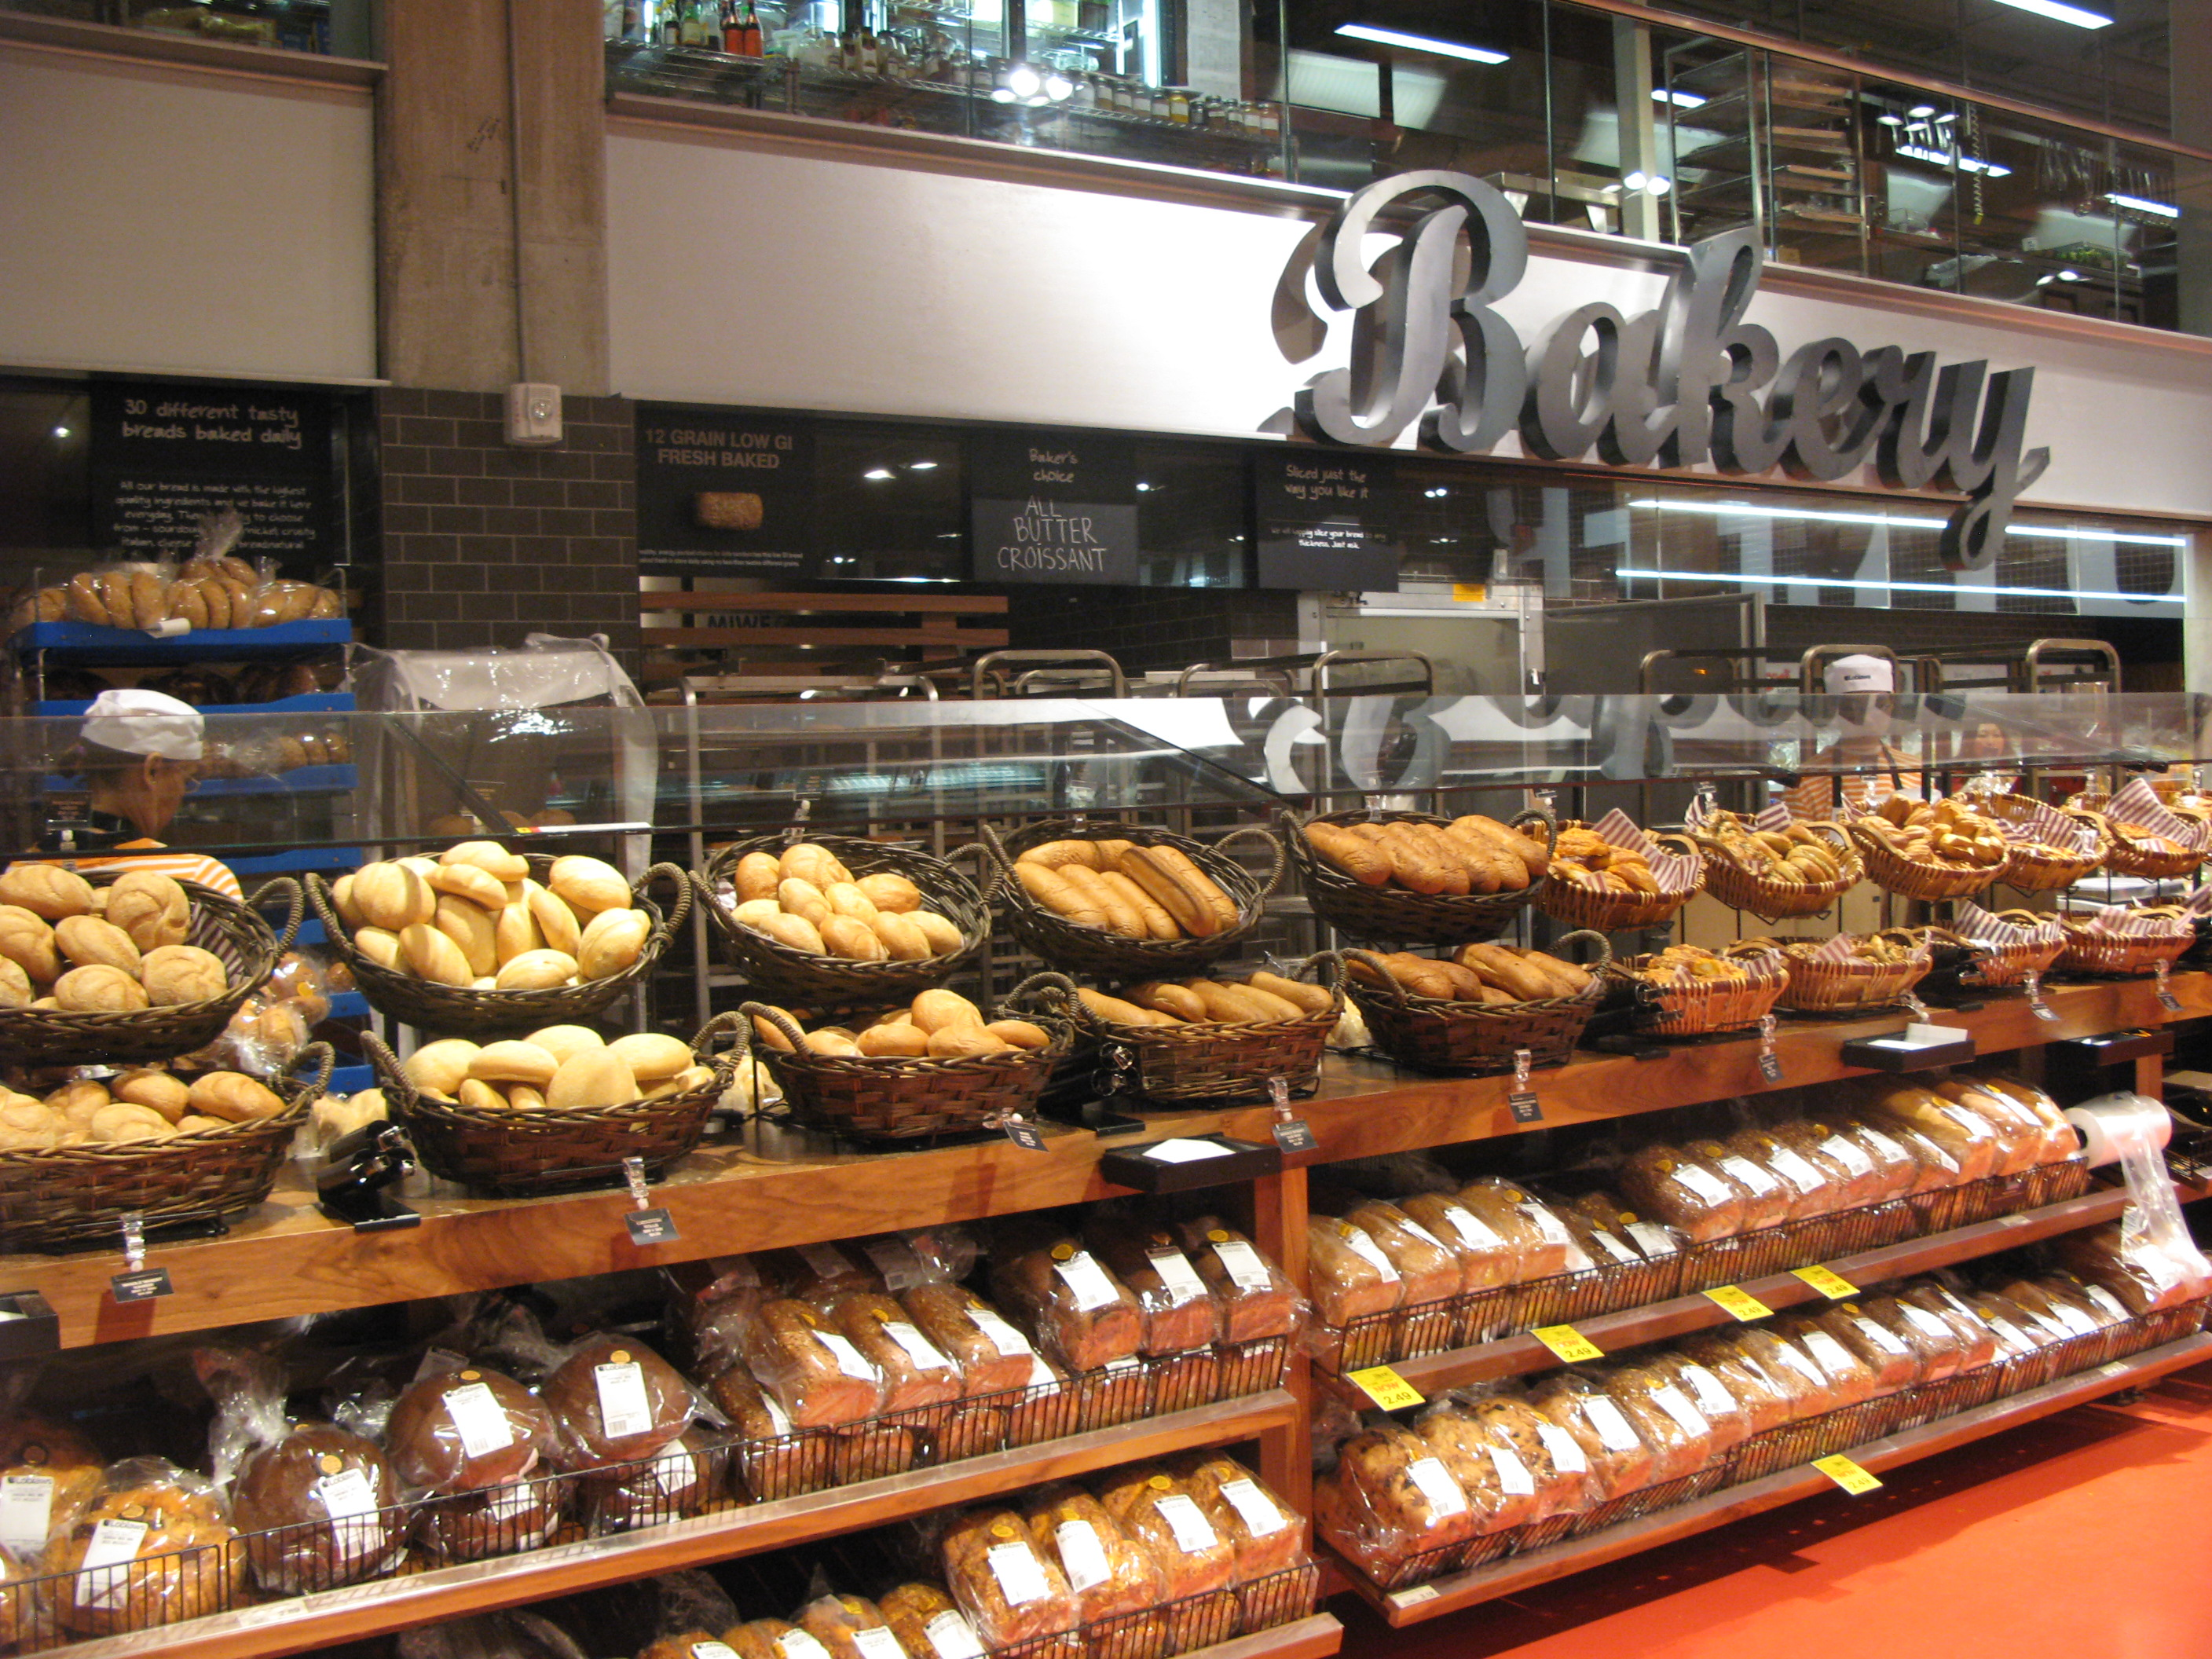 Picture This: Maple Leaf Gardens Loblaws – Heartless Girl